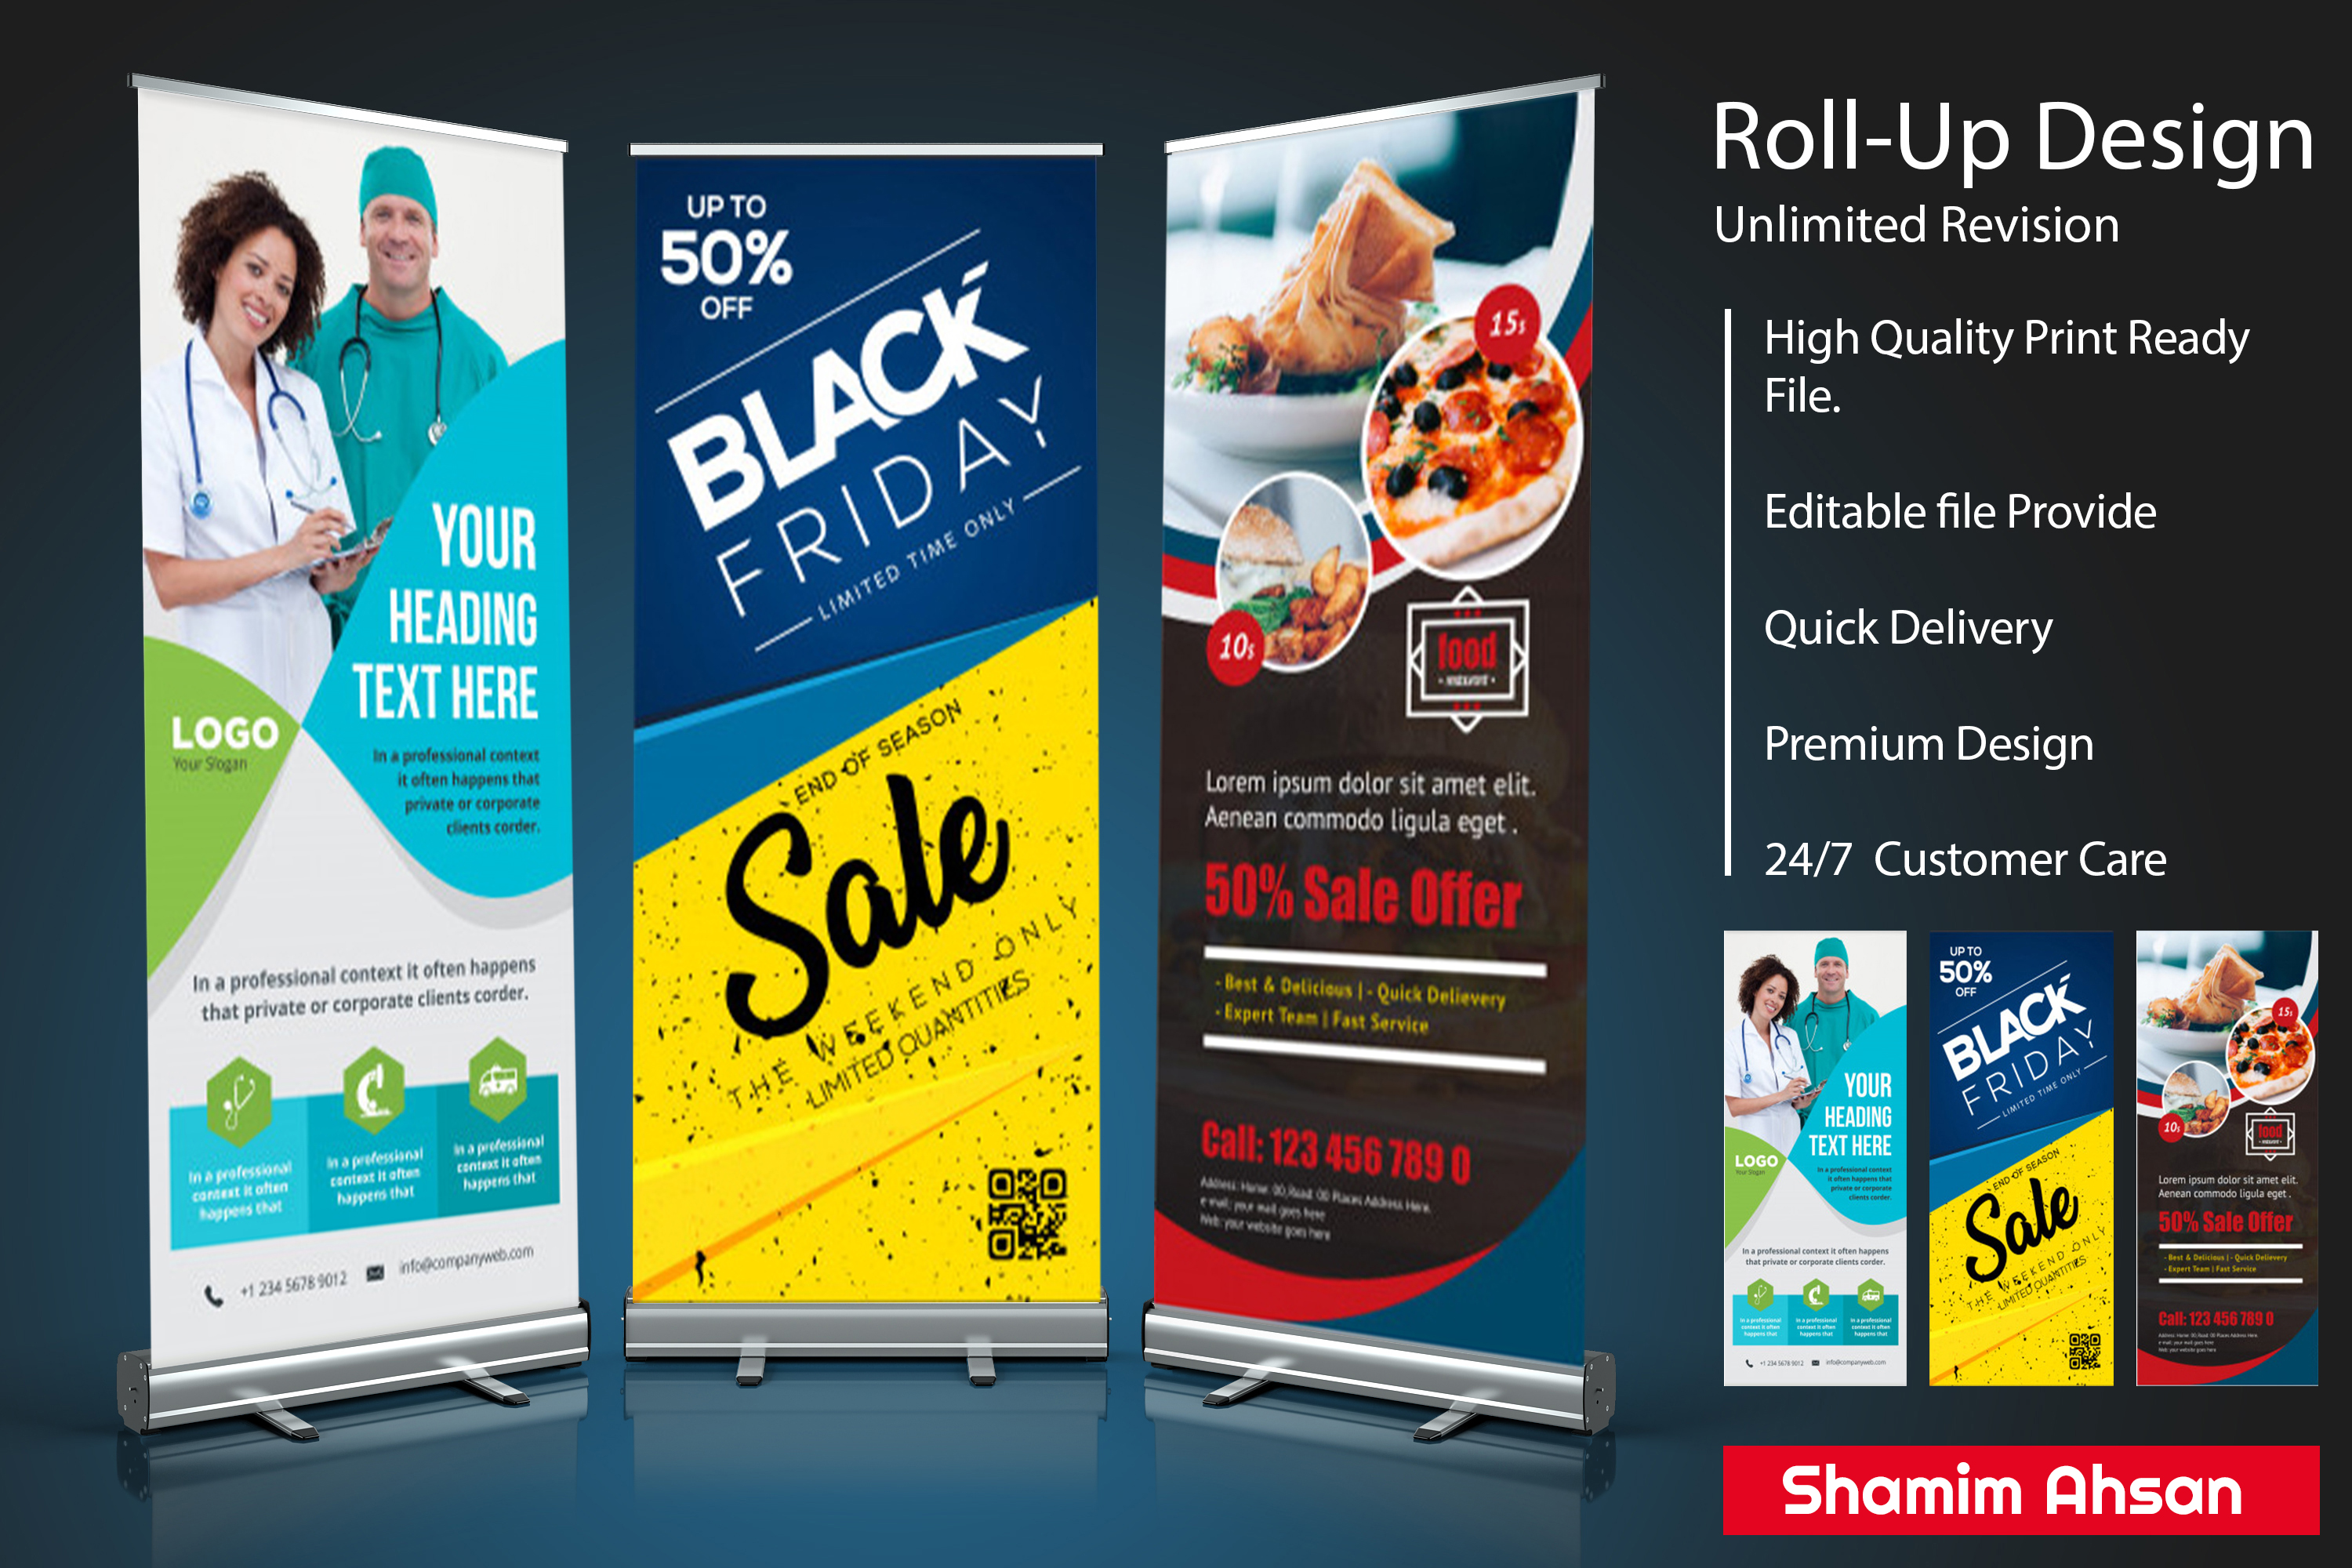 Design Any Banner, Billboard Or Roll-Up within 24 hours